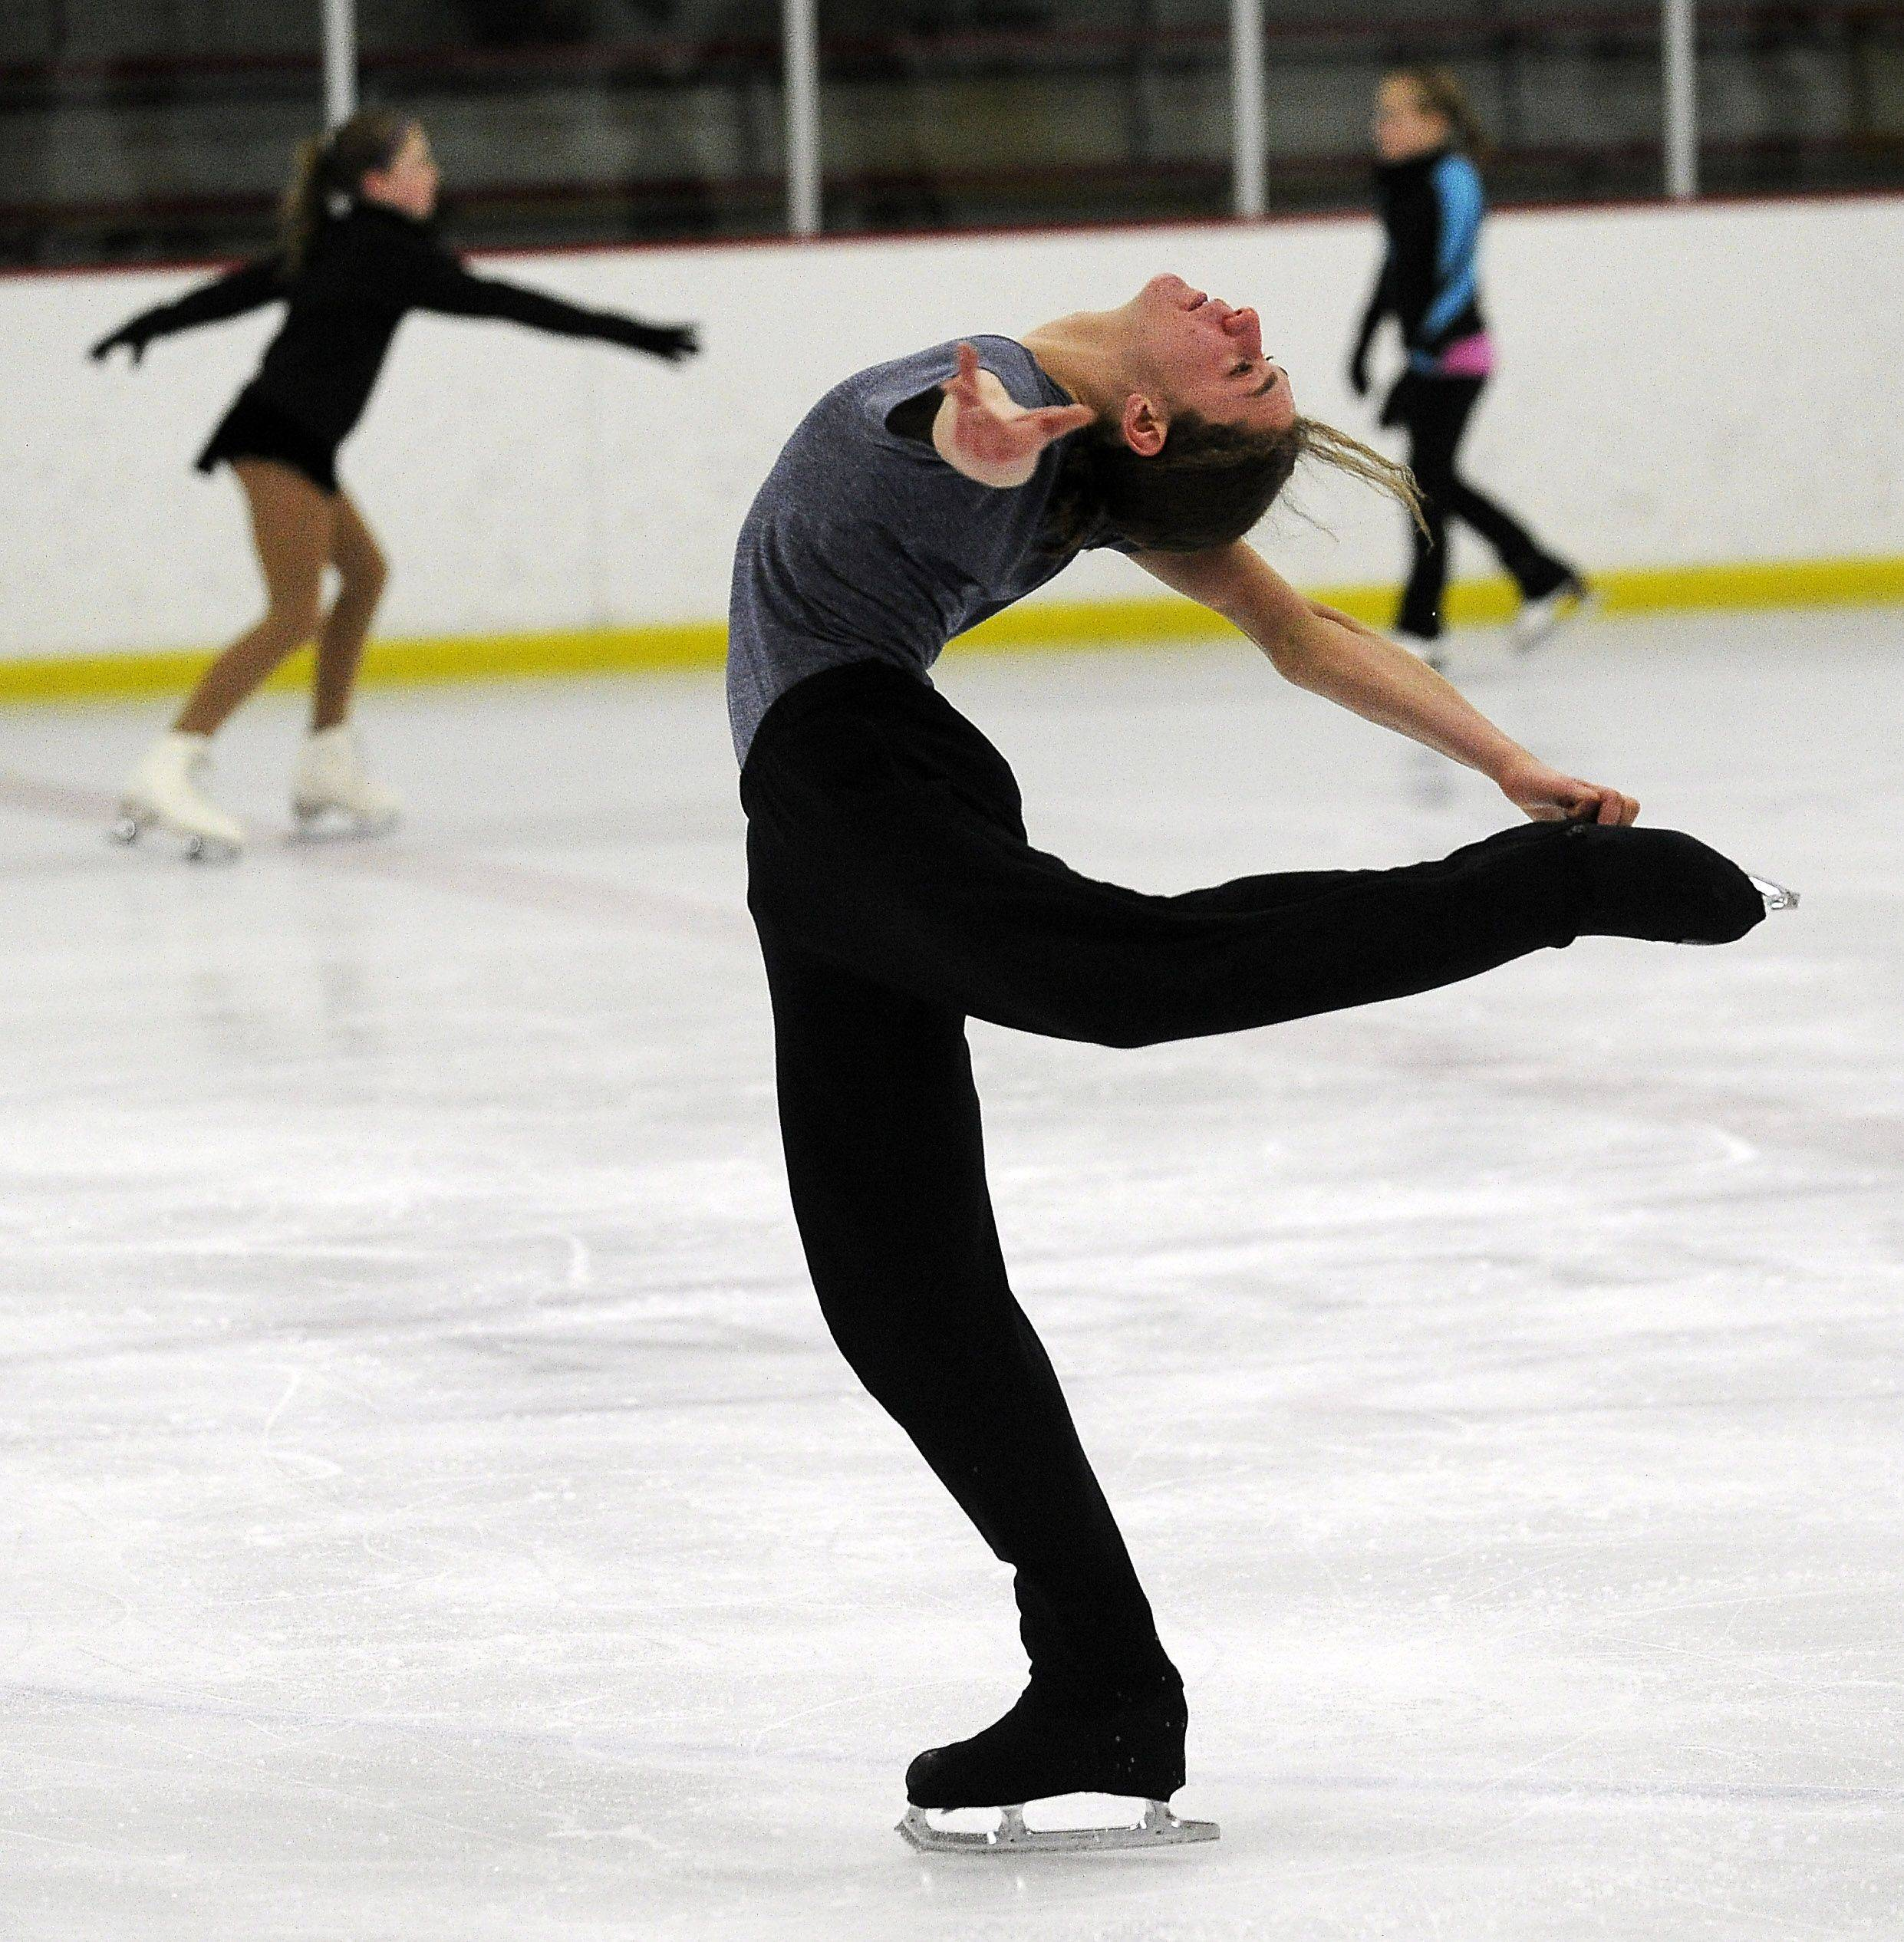 Jason Brown practices at the Twin Rinks Arena in Buffalo Grove last weekend.